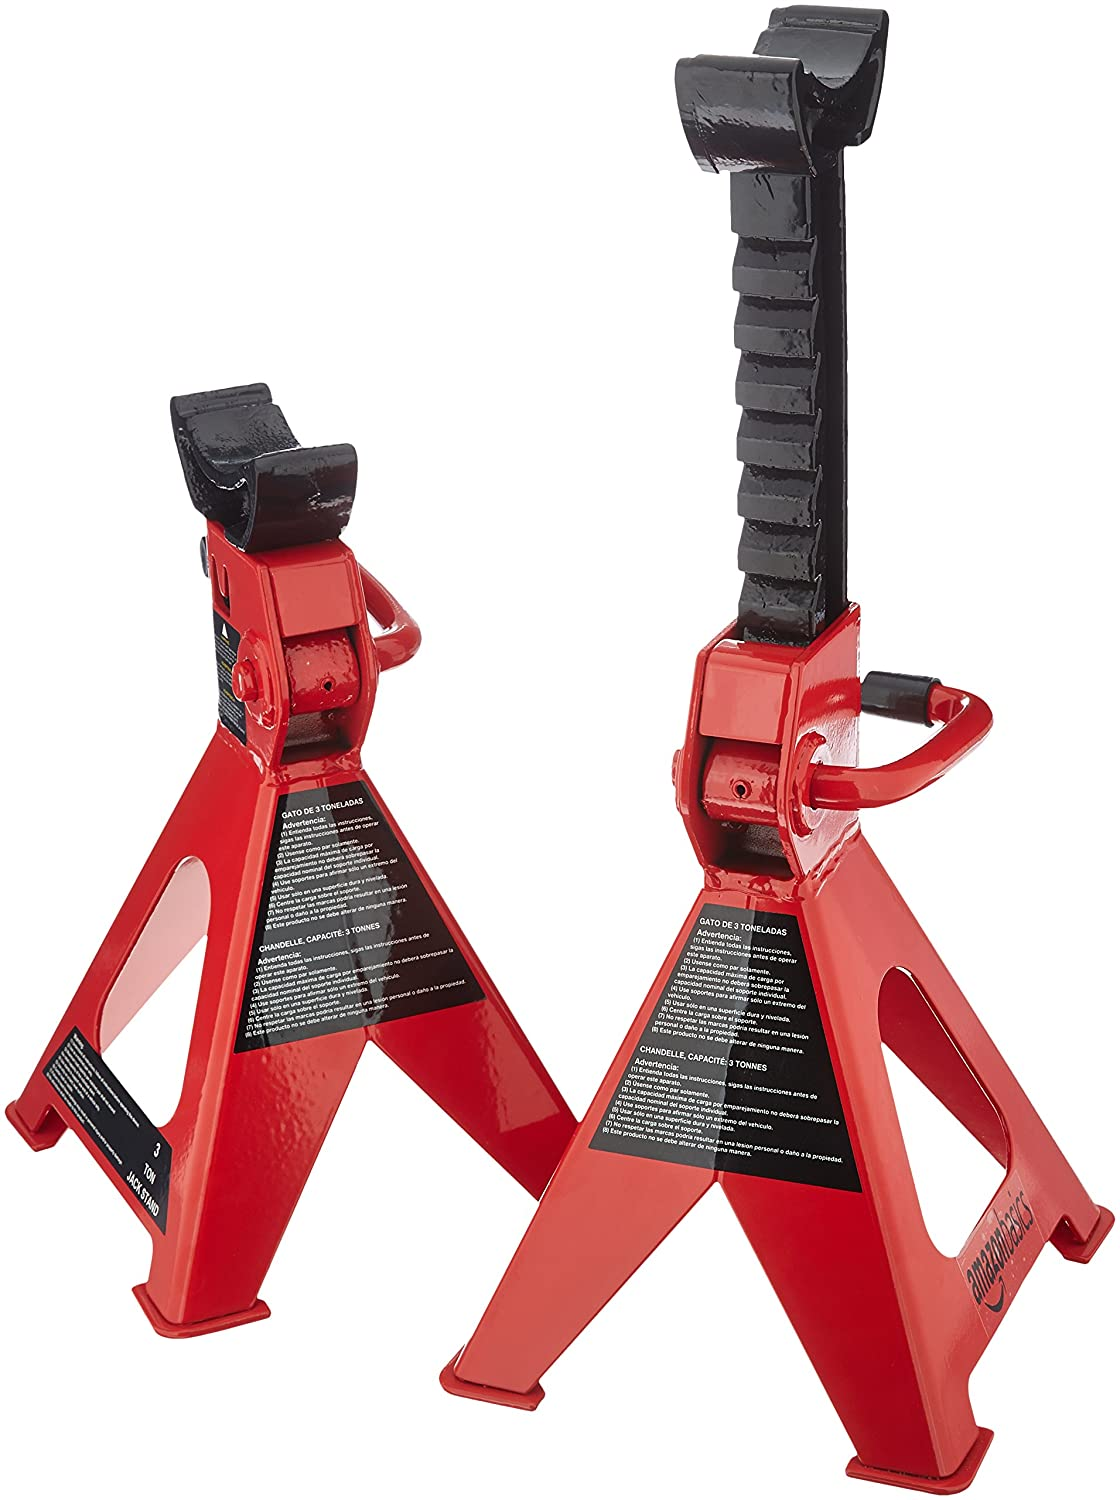 Top 10 Best Jack Stands